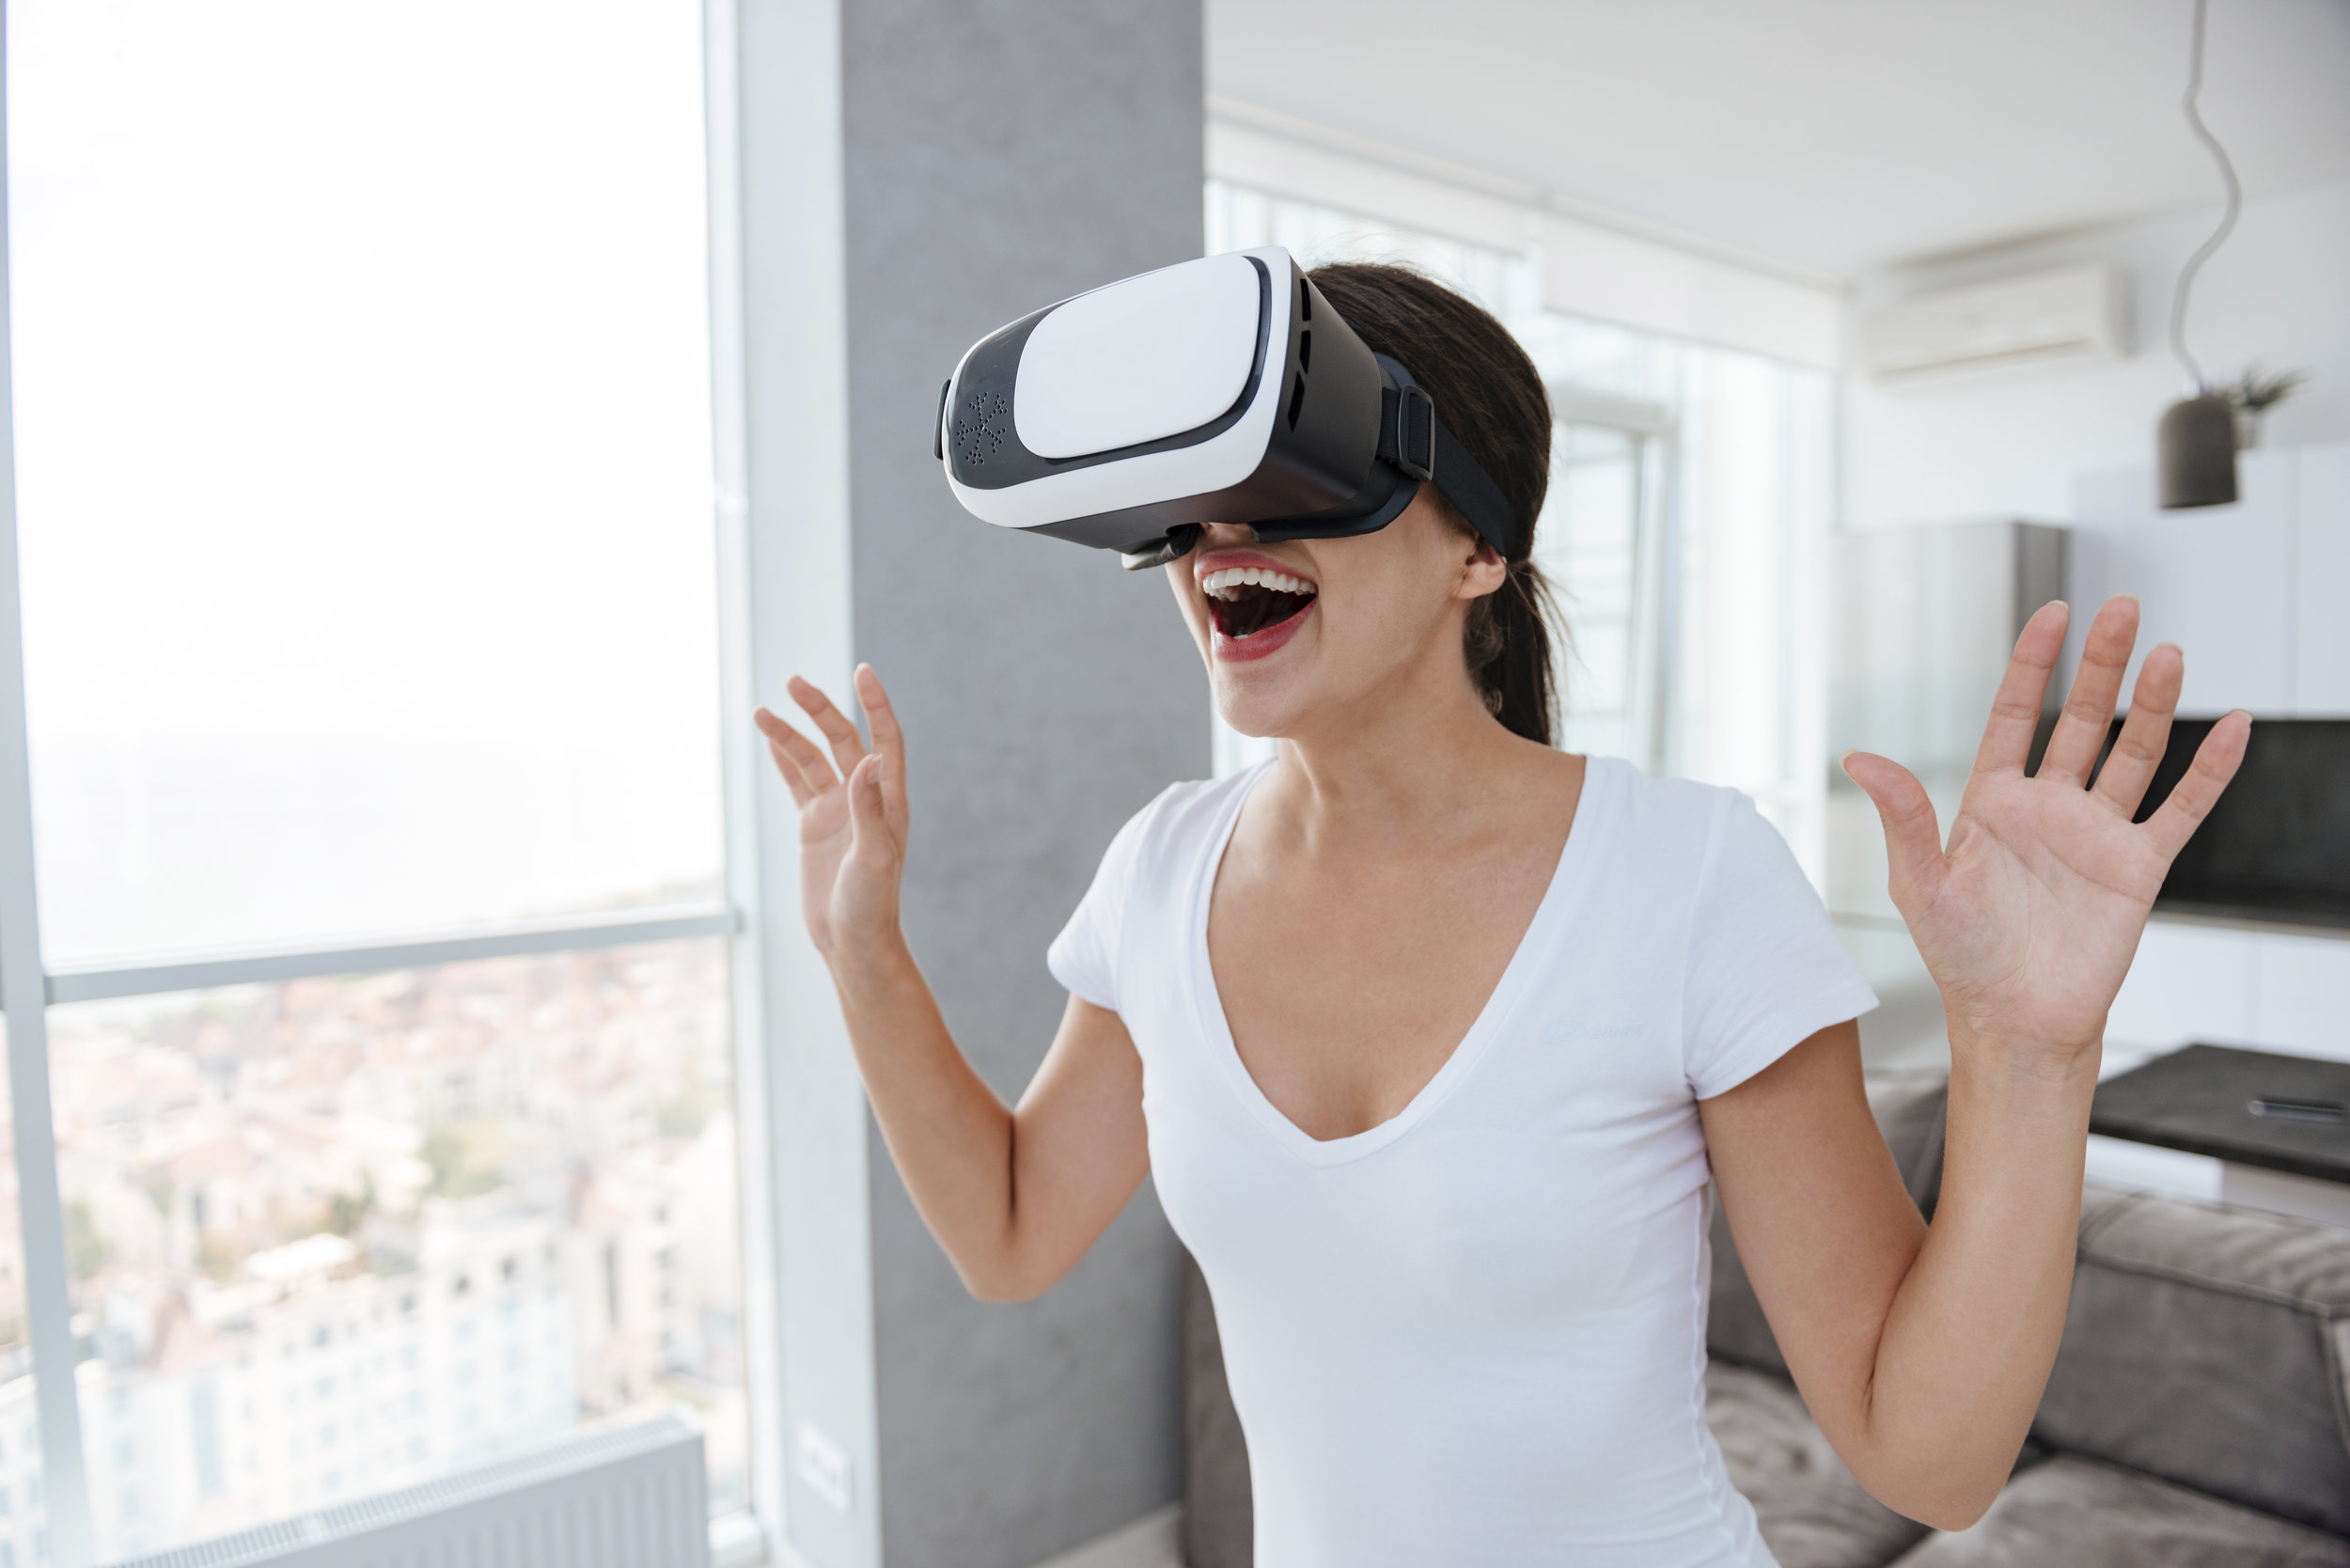 8. Deep Dive in VR - The team elects Sara to lead the quest. Chen grabs the old school console controllers and tosses her the VR headset. She hesitates before putting it on. Maybe she'll just keep meditating instead--nah!